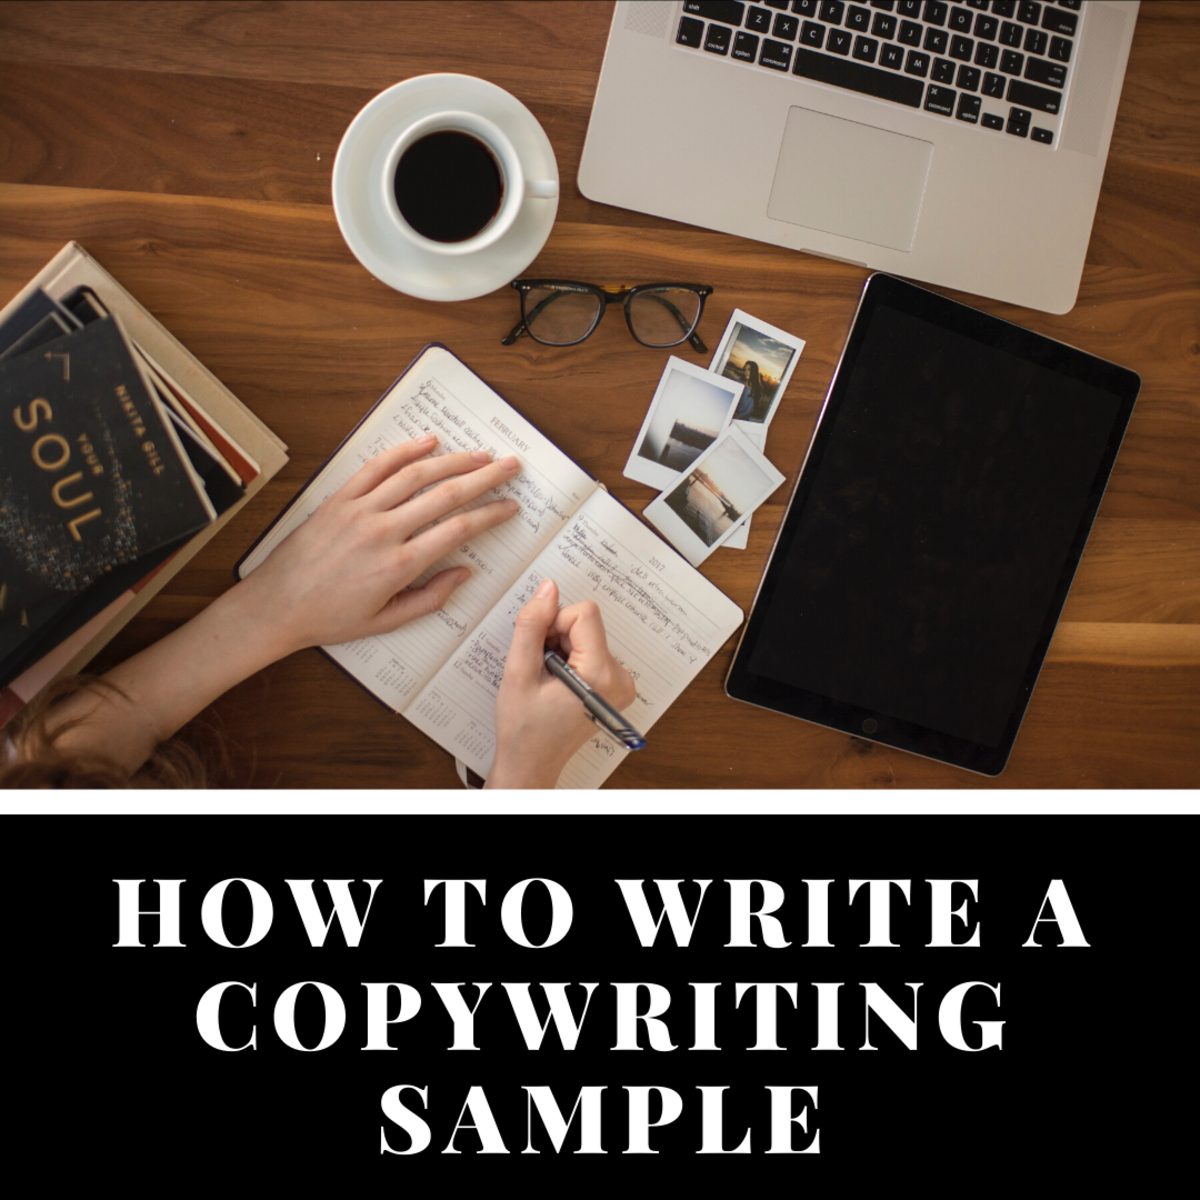 Copywriting is an important occupation. Make sure that your sample is up to par so that you can get the job!